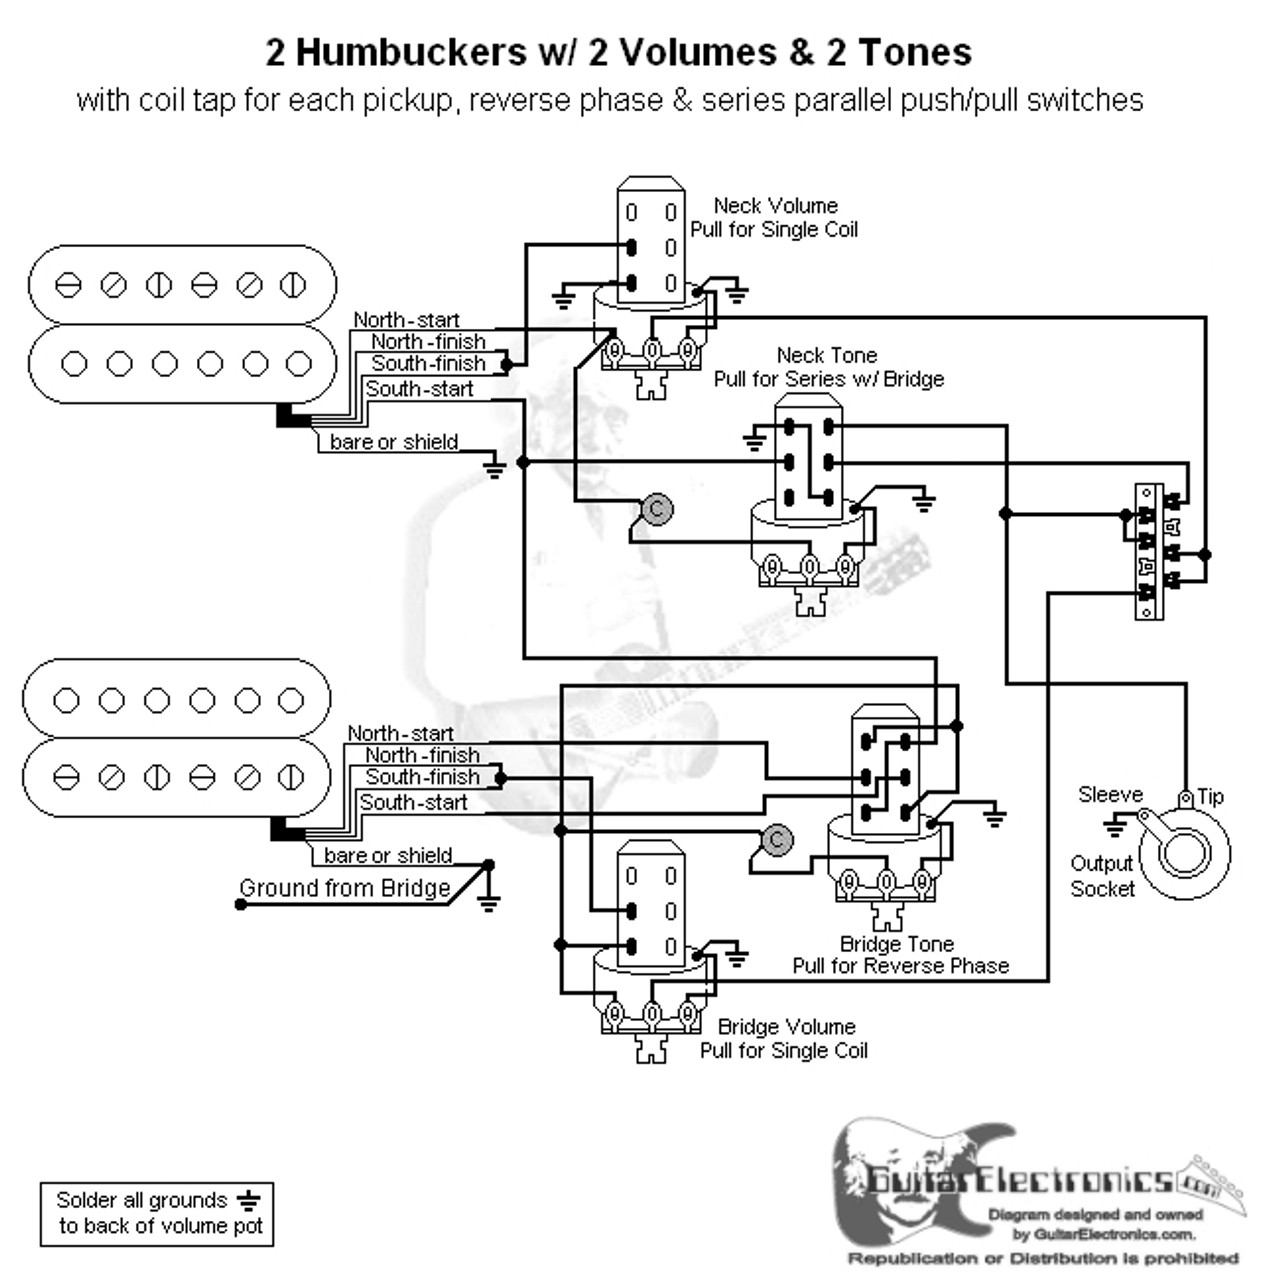 small resolution of 2 hbs 3 way lever 1 vol 2 tones coil tap series parallel phase les paul 2 vol 2 tone guitar ground wiring diagram